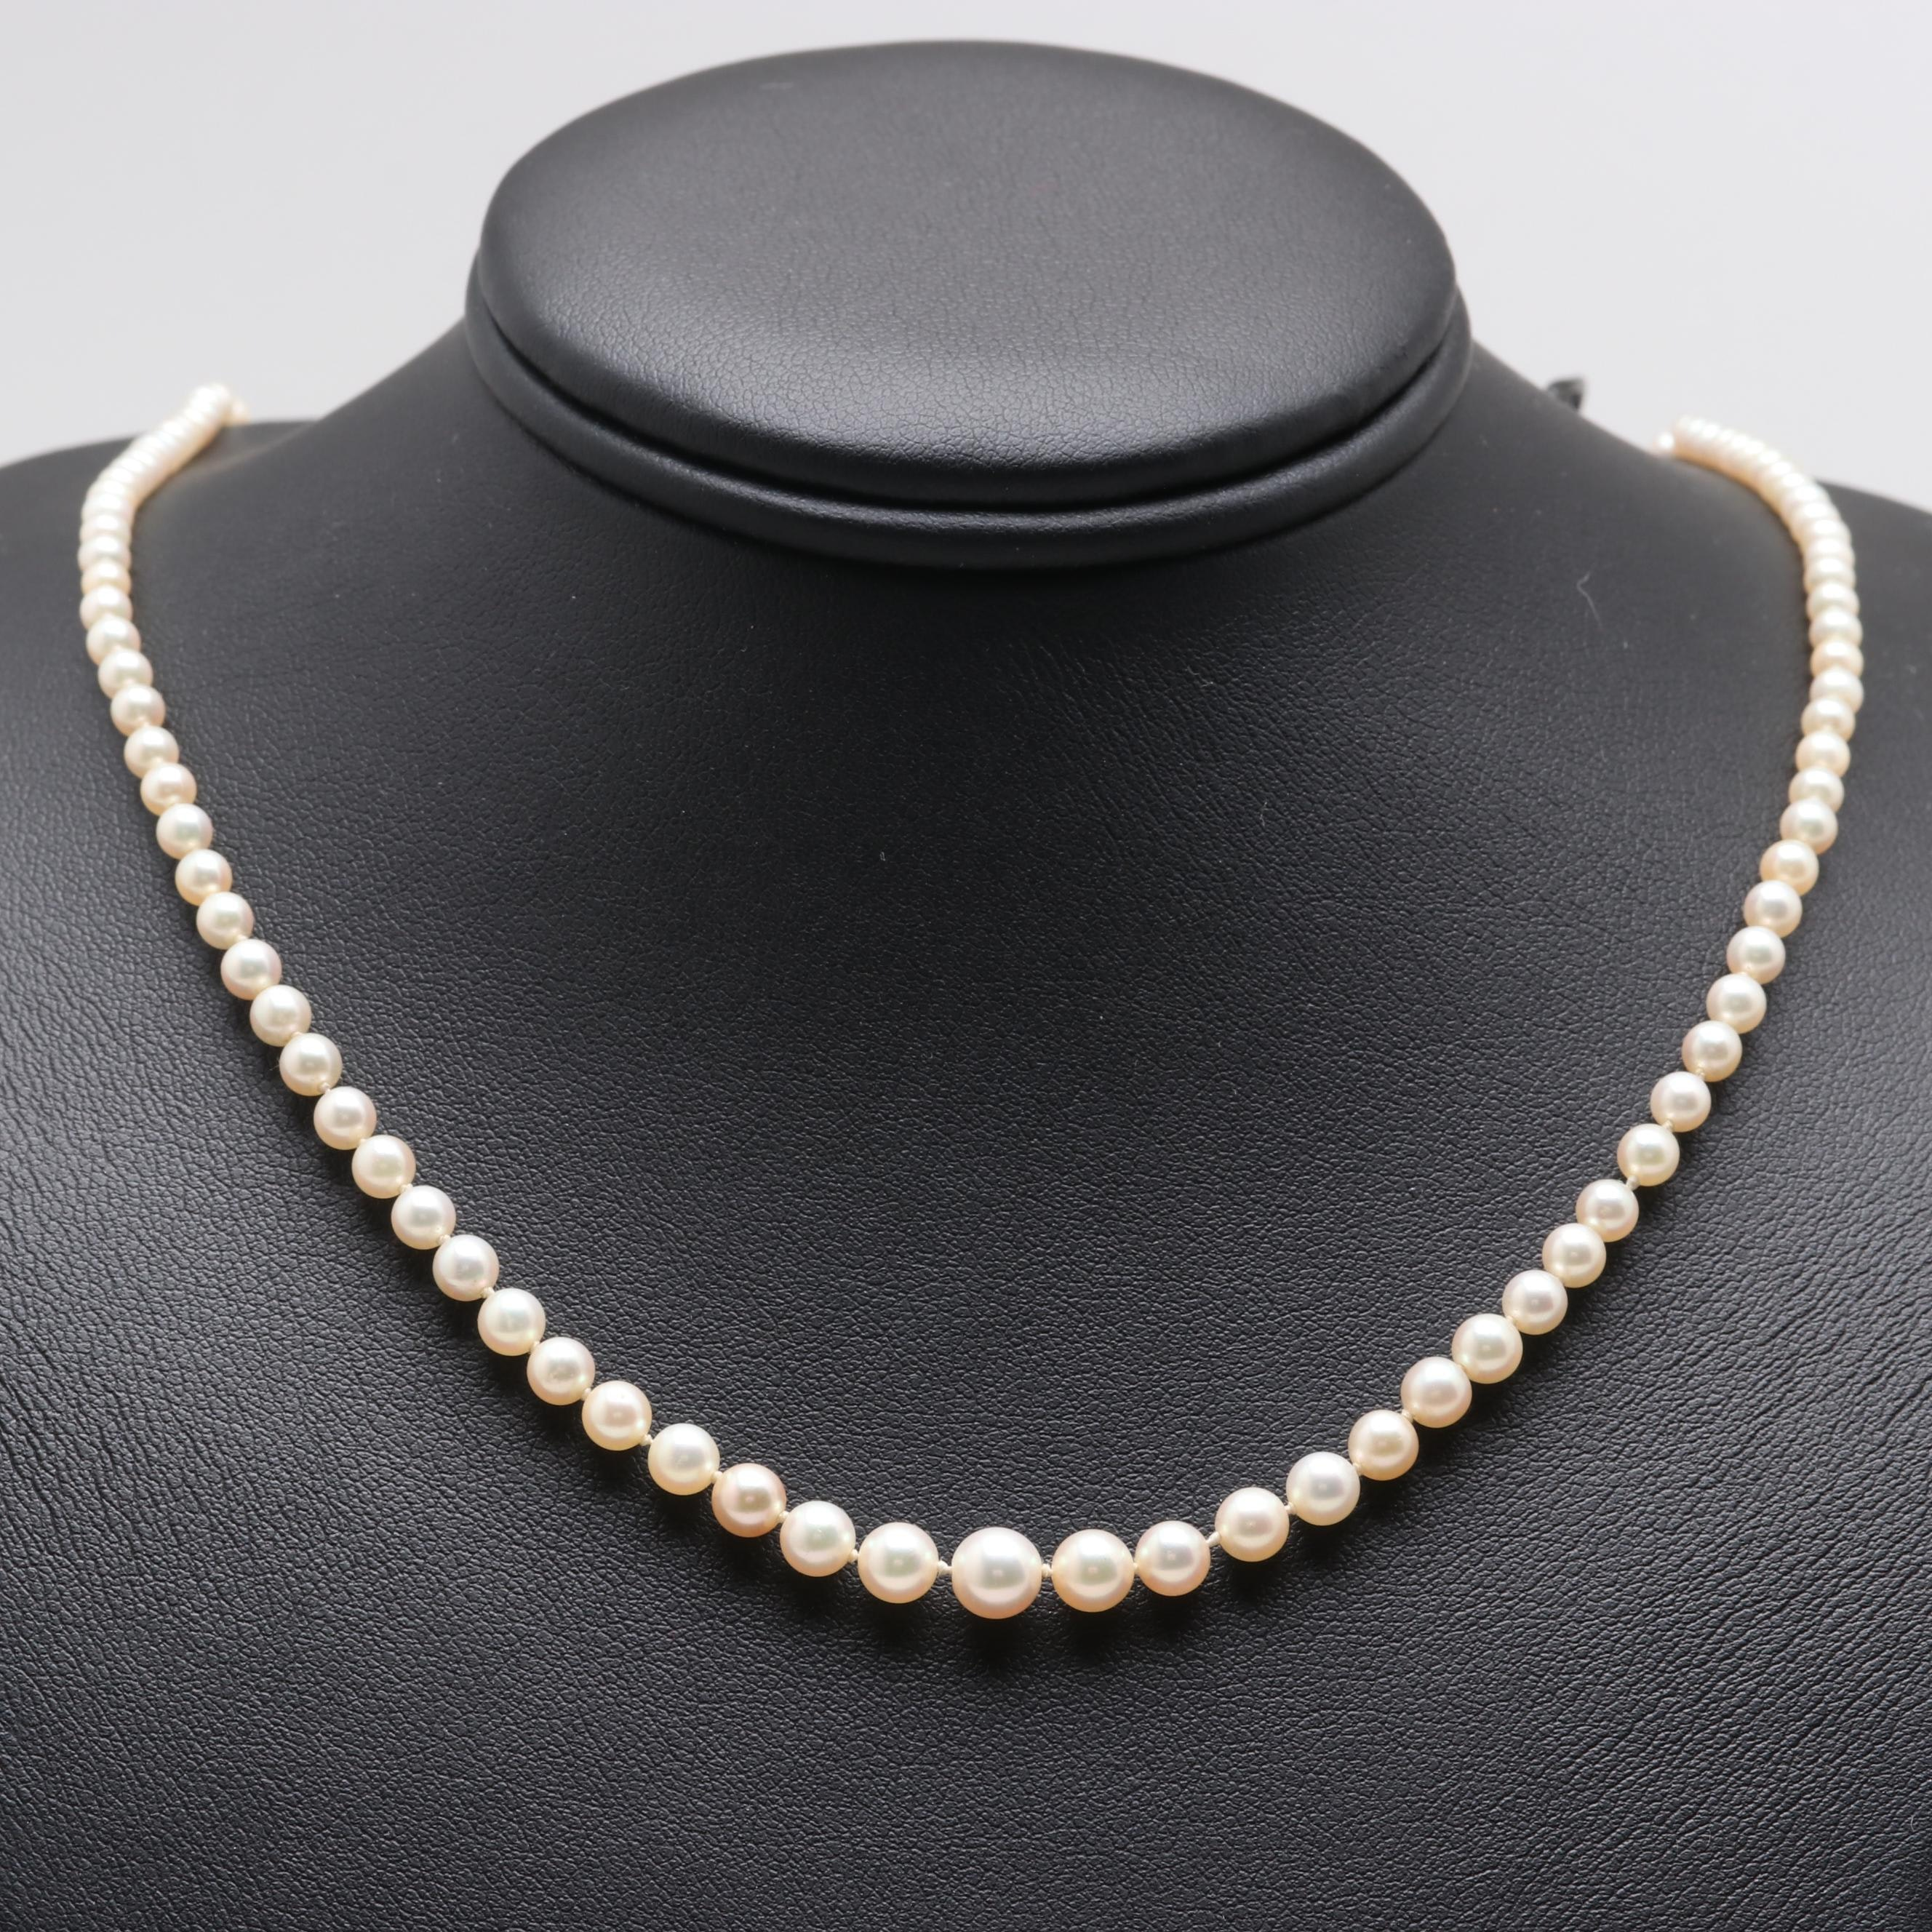 14K White Gold Graduating Cultured Pearl Necklace